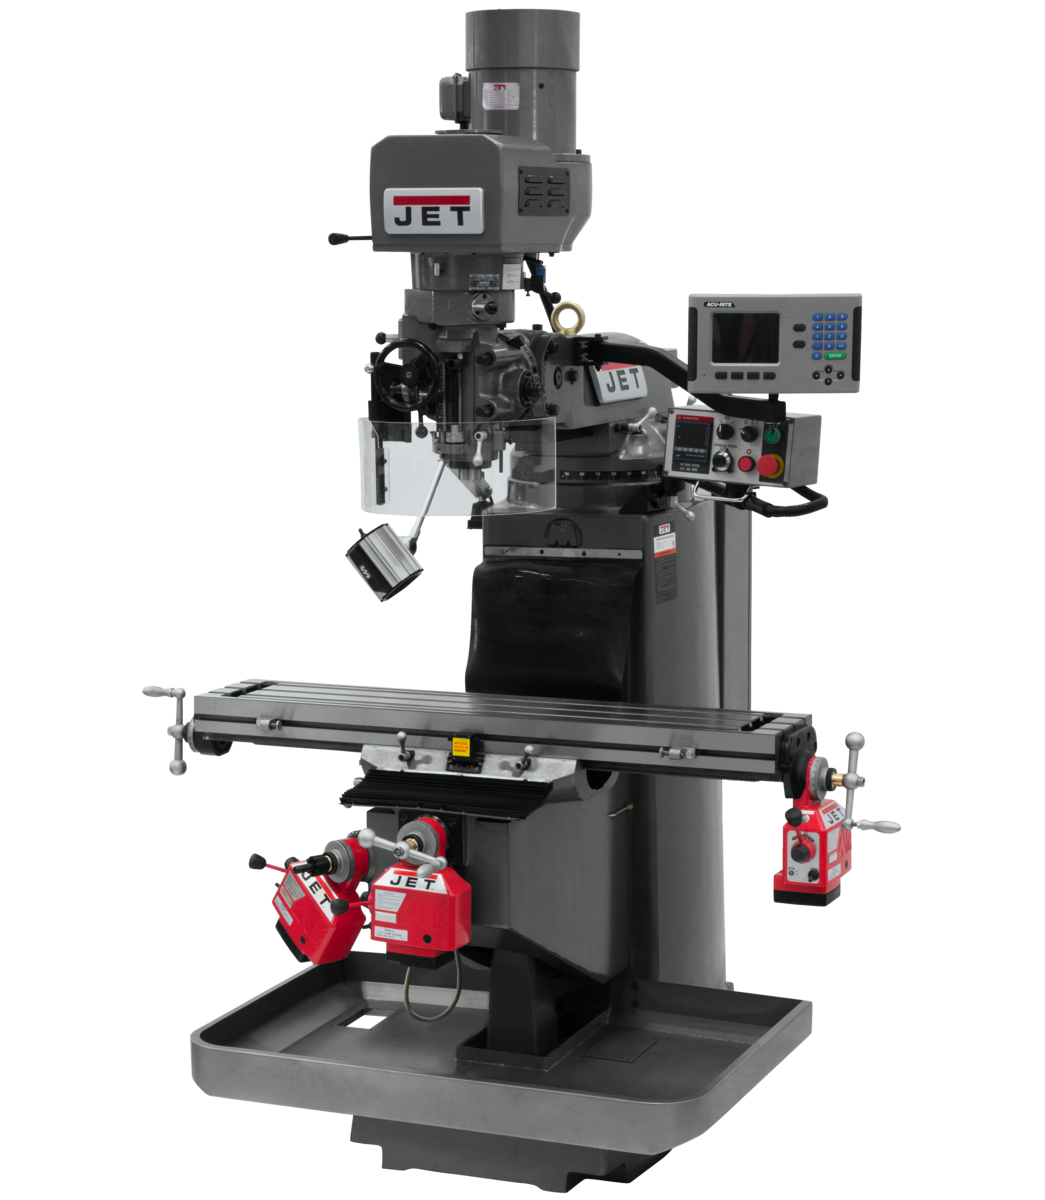 JTM-949EVS Mill With 3-Axis Acu-Rite 203 DRO (Knee) With X, Y and Z-Axis Powerfeeds